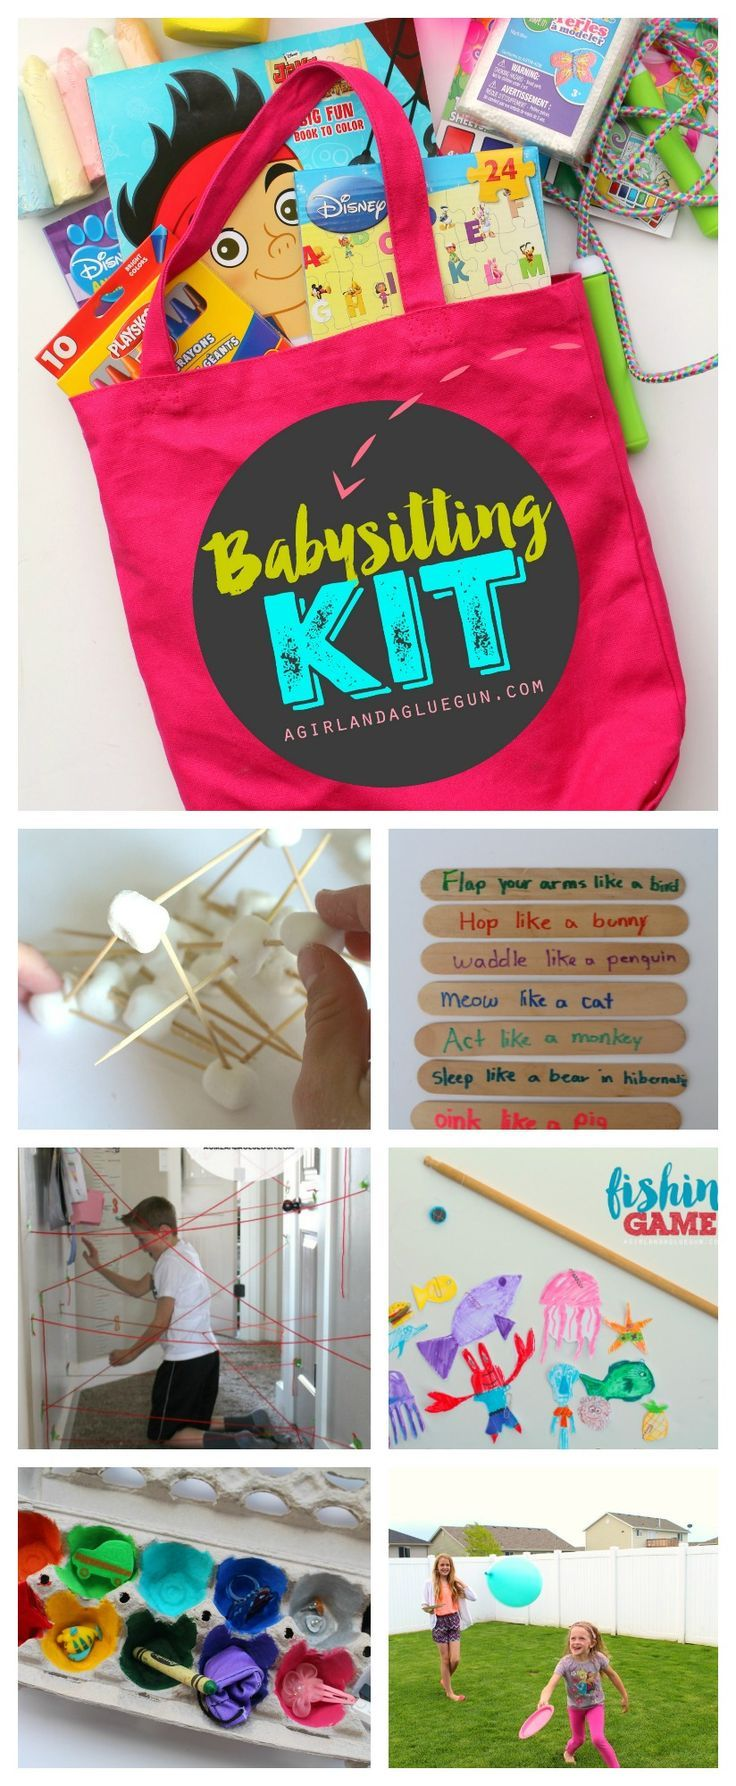 Easy Babysitting Jobs For 13 Year Olds: 1206 Best Kid Crafts And Fun Things To Do Images On